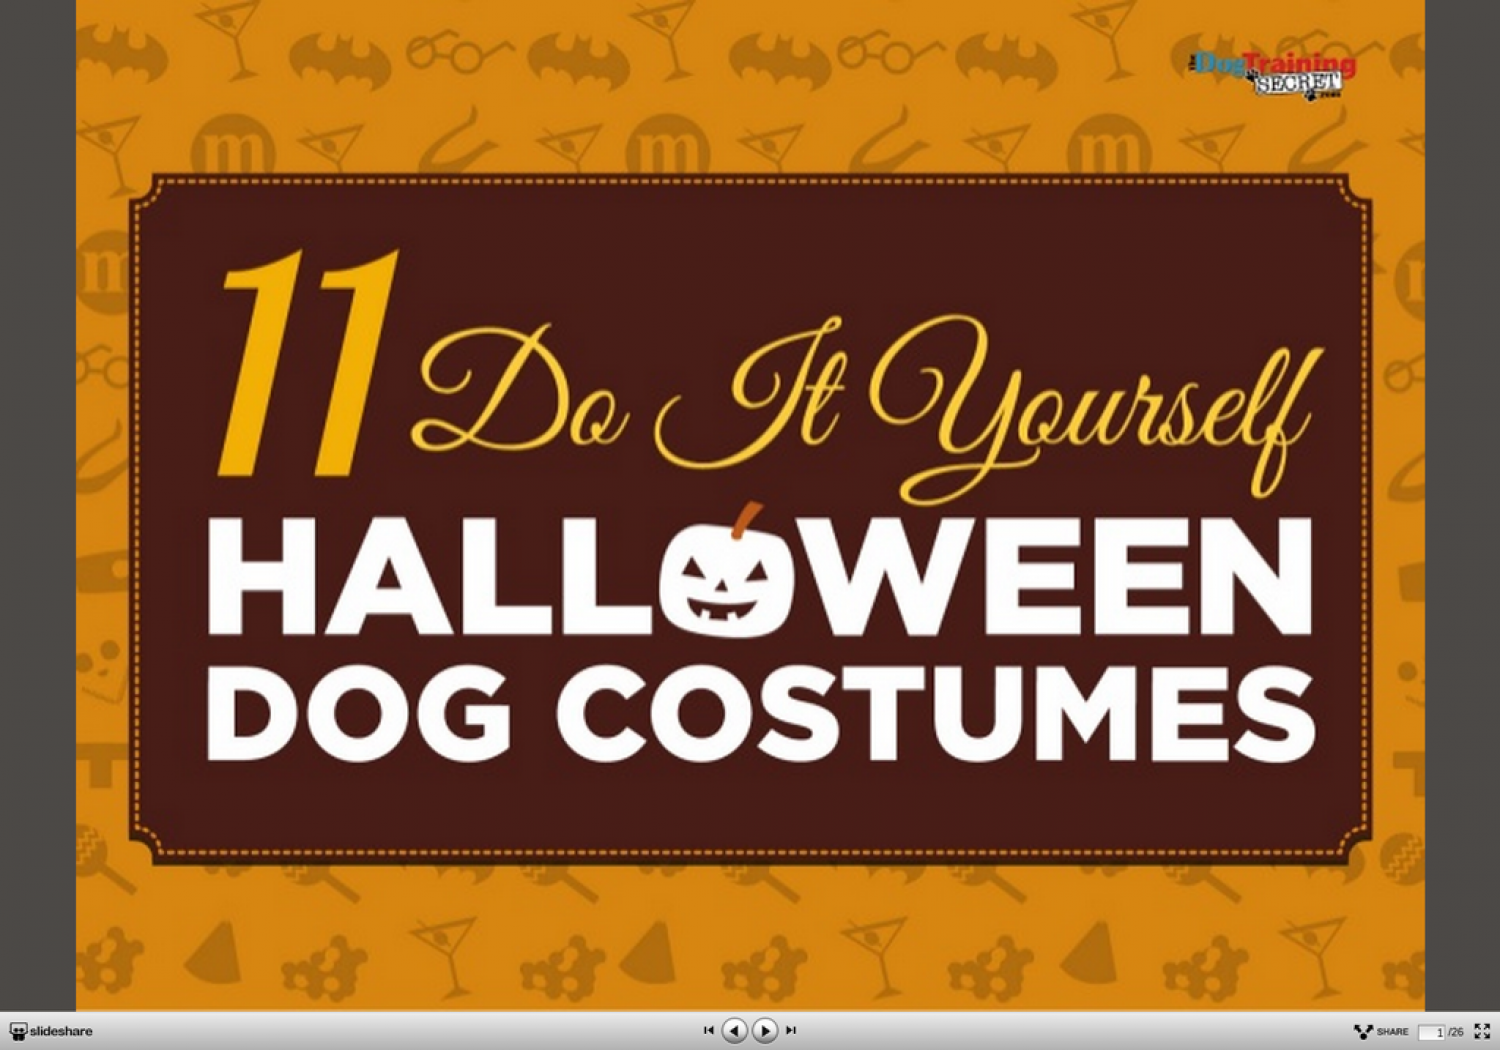 11 creative diy dog costumes you can make in time for halloween 11 creative diy dog costumes you can make in time for halloween infographic solutioingenieria Choice Image